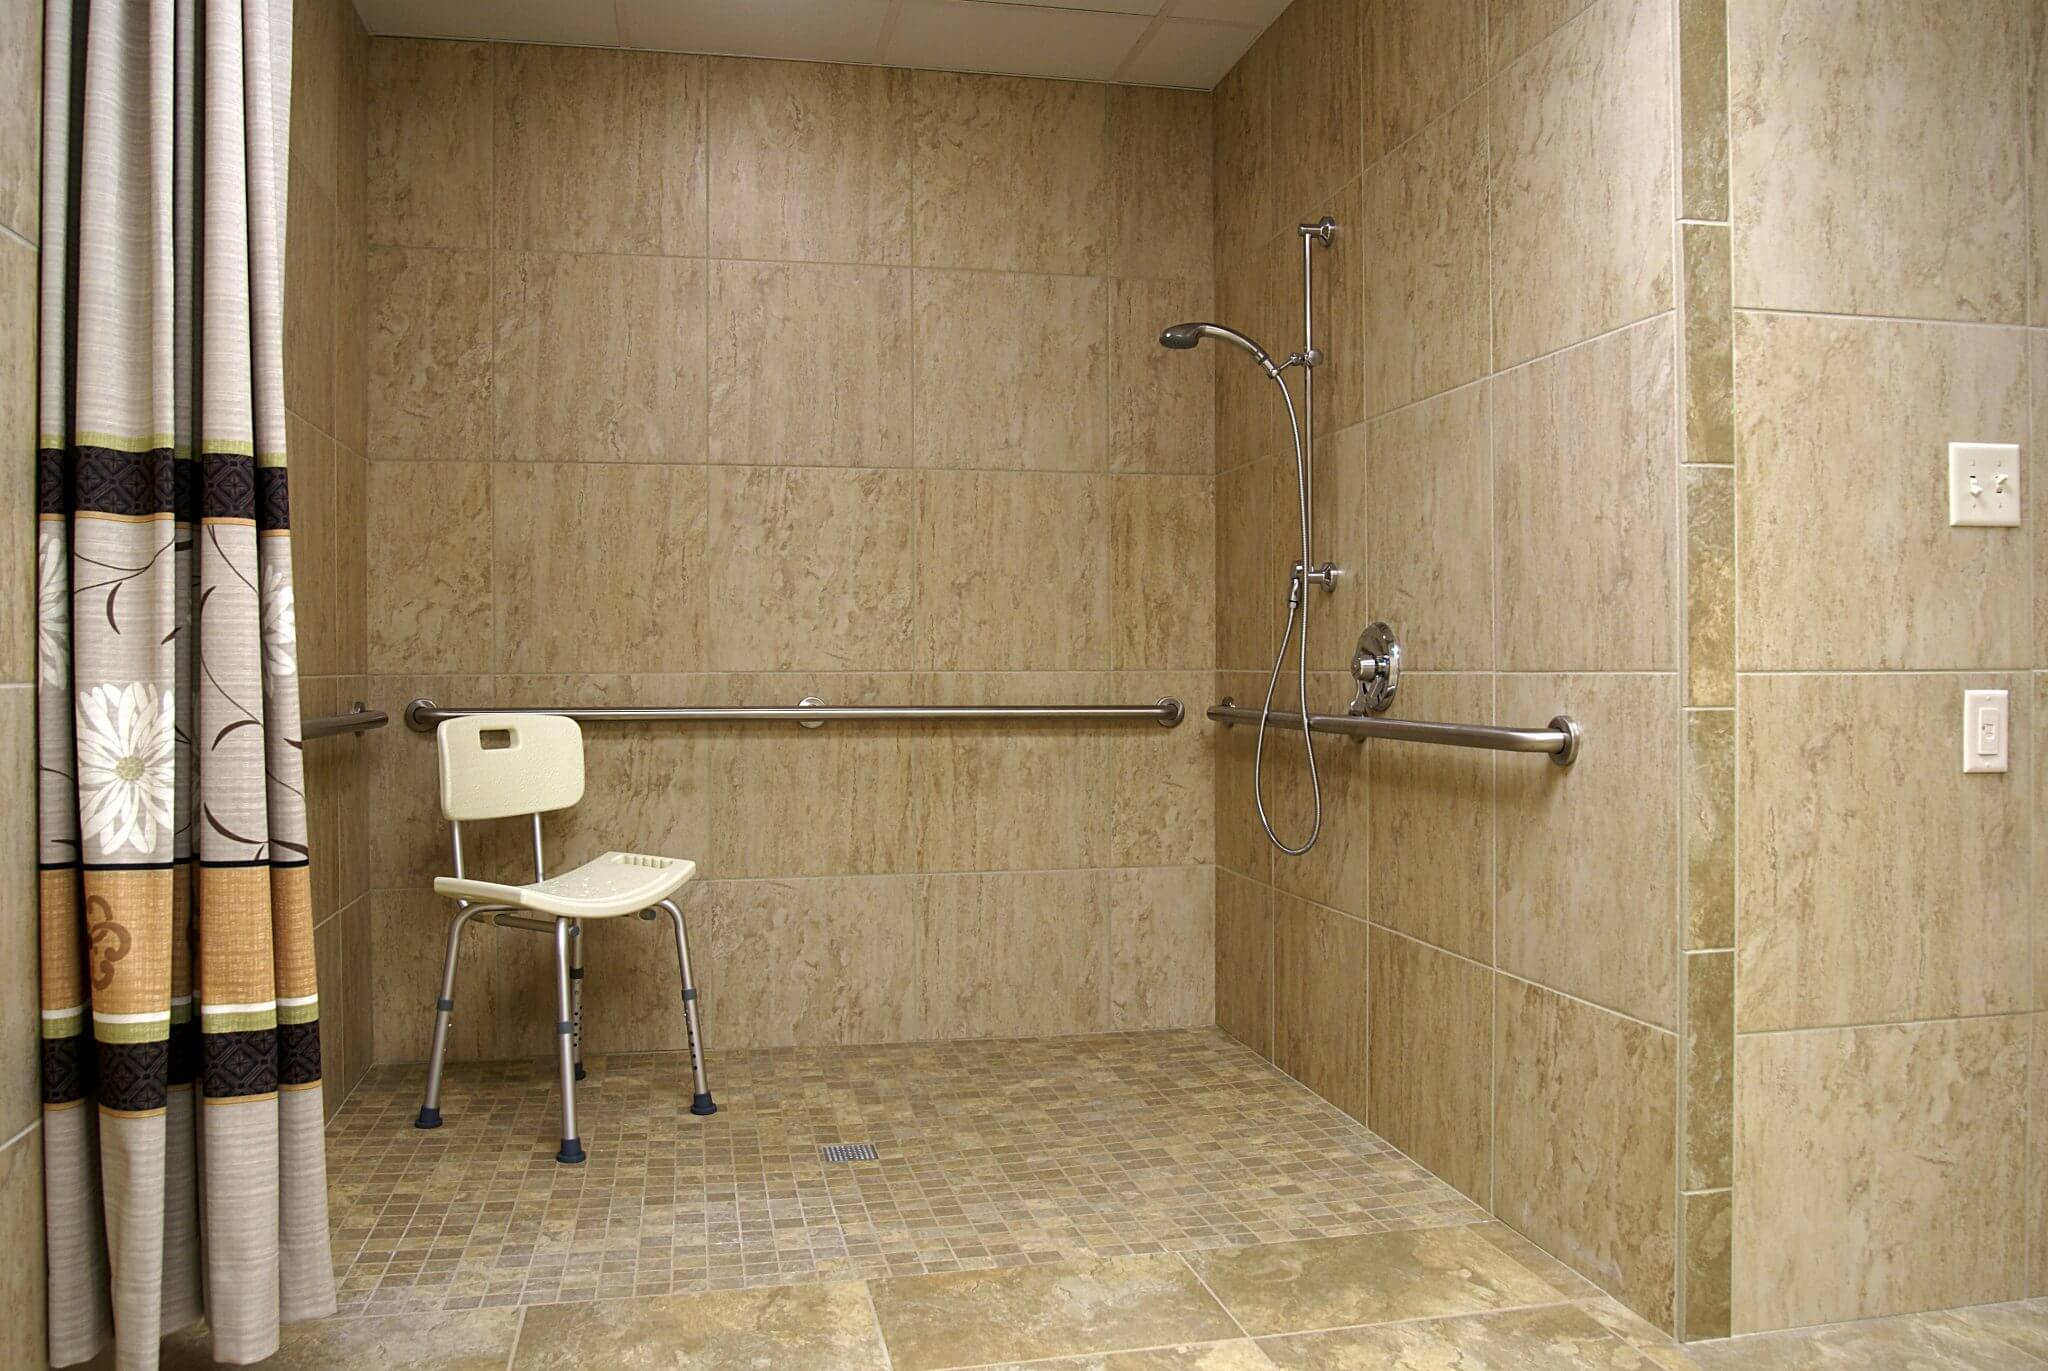 interior shot of bathroom with walk-in shower